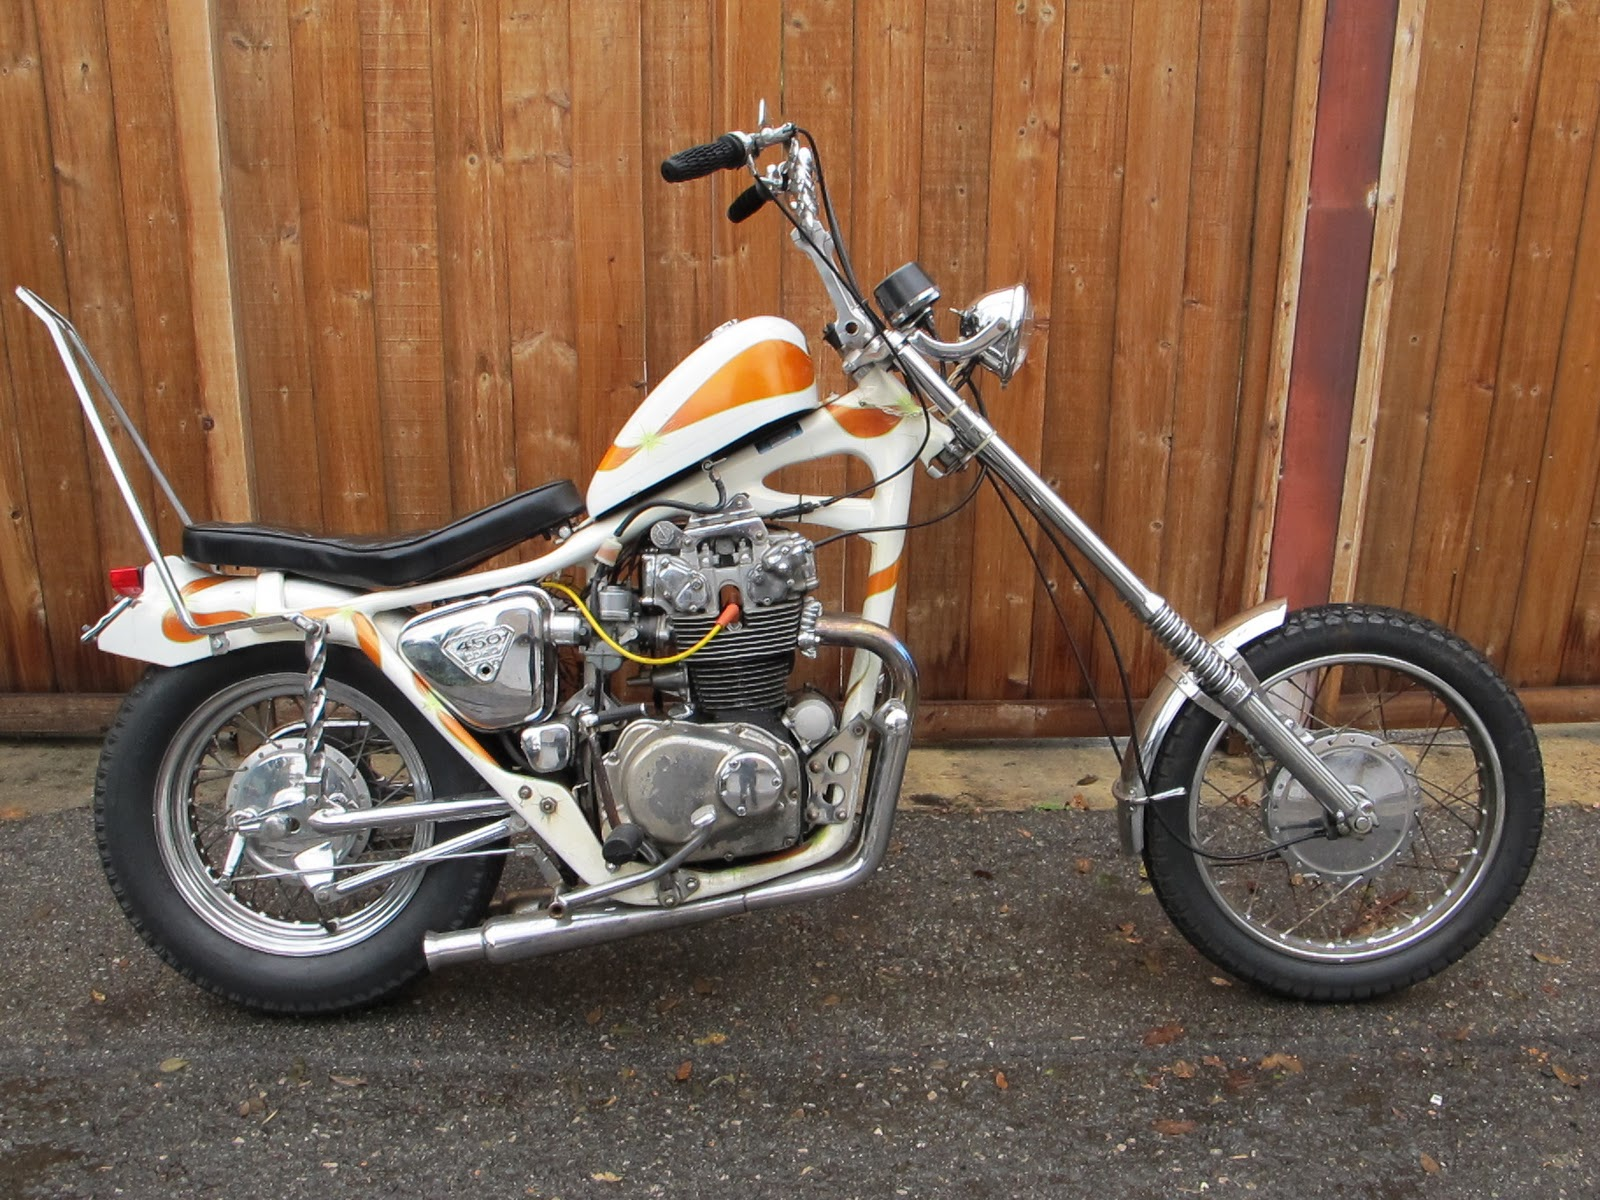 Freedom machinery acc honda chopper for sale for Honda frisco service